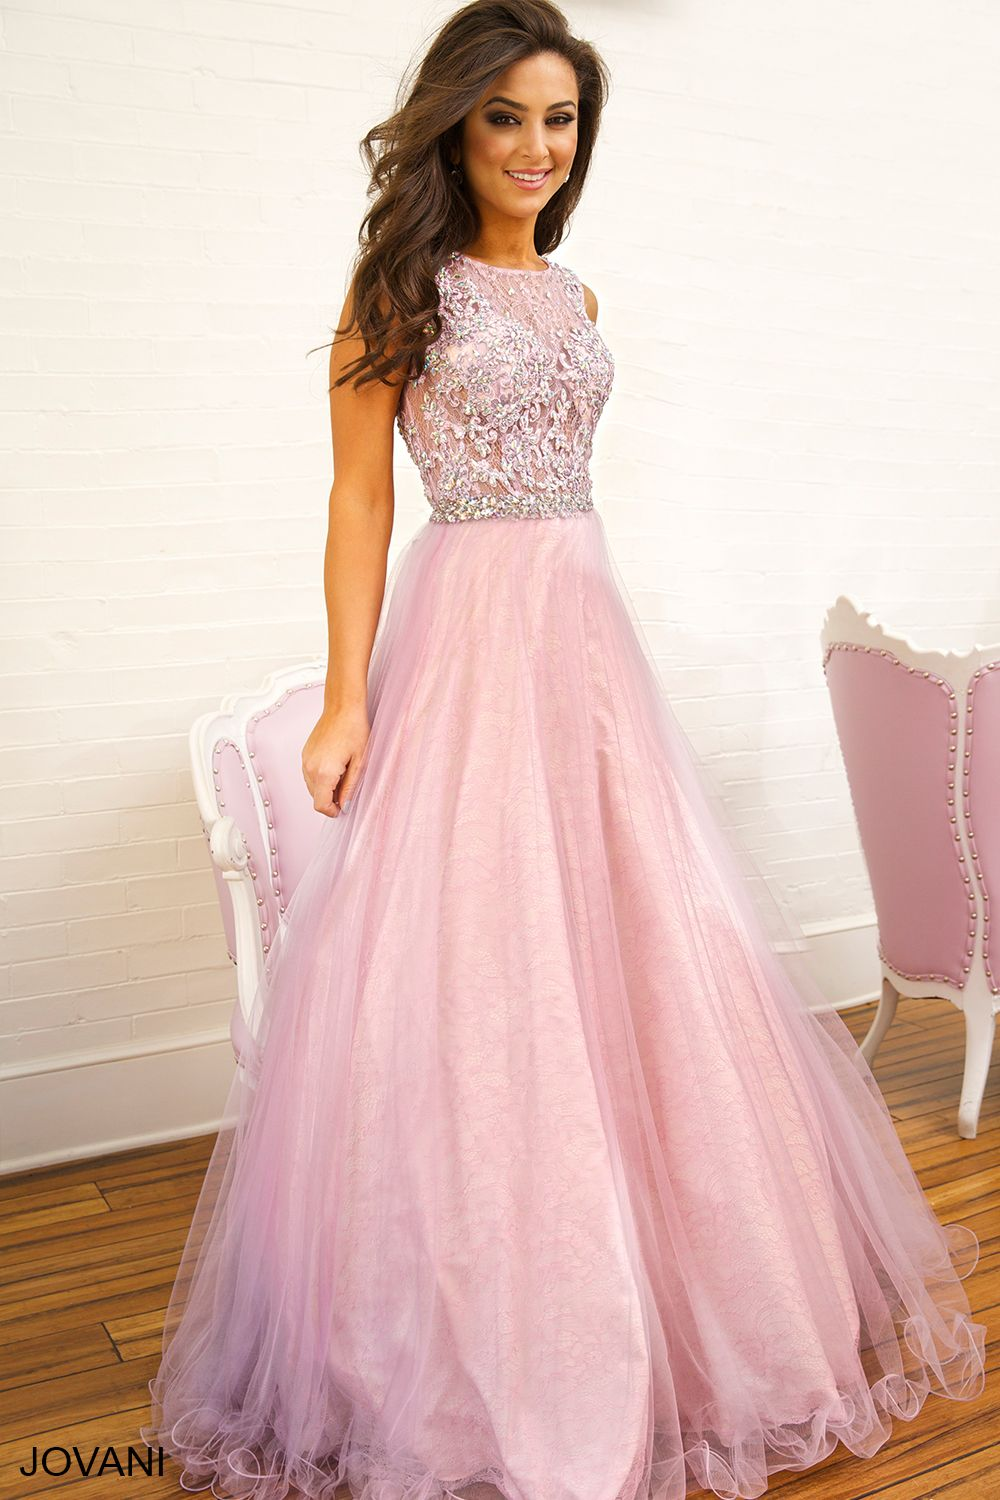 Pin by Courtney Groves on Formal dresses Pinterest Prom Gowns